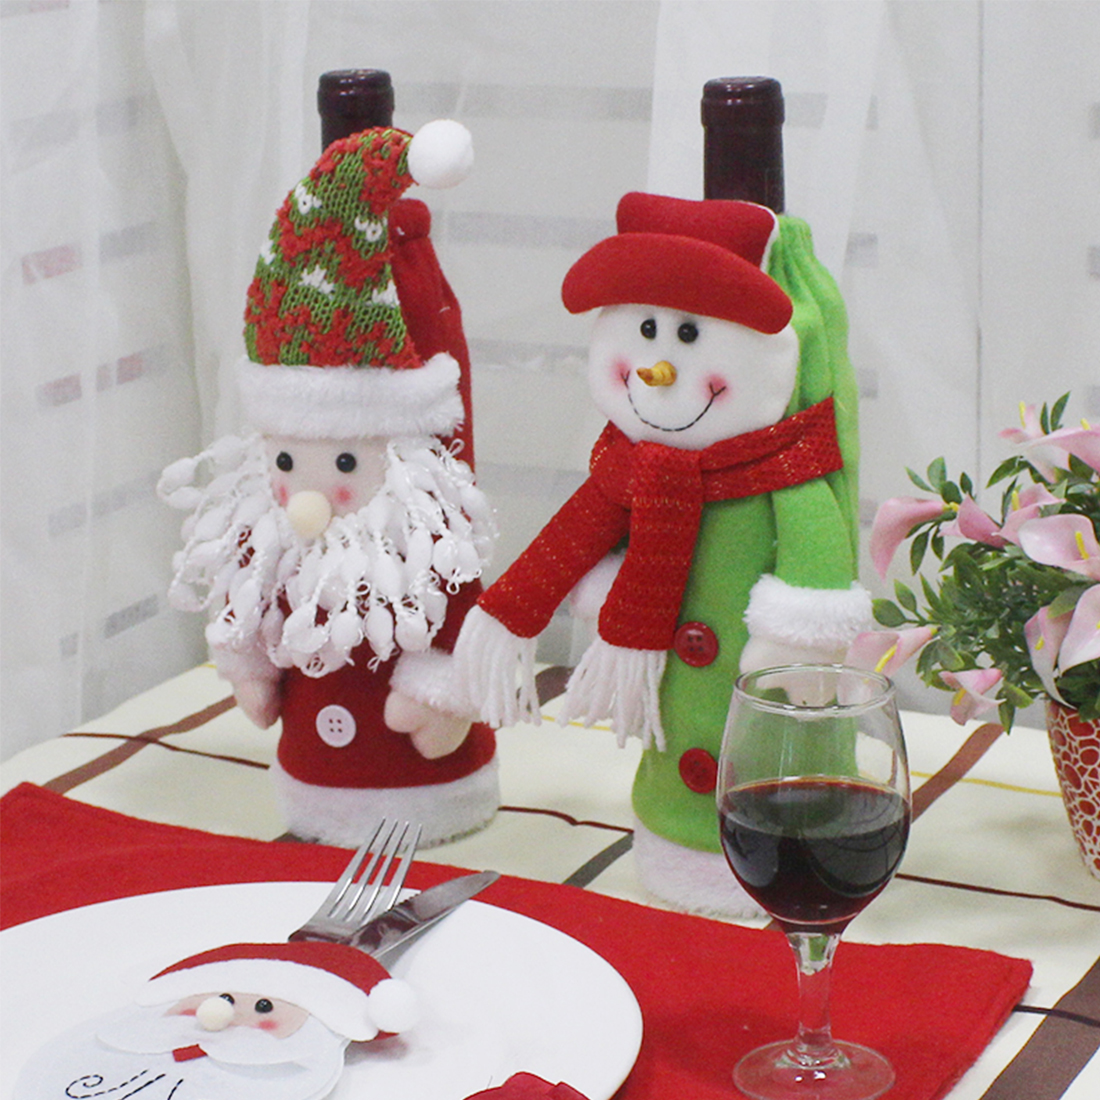 Top Christmas Bottle Sets Santa Claus Snowman Wine Bottle Cover Holders Wedding Birthday Party Decoration Supplies